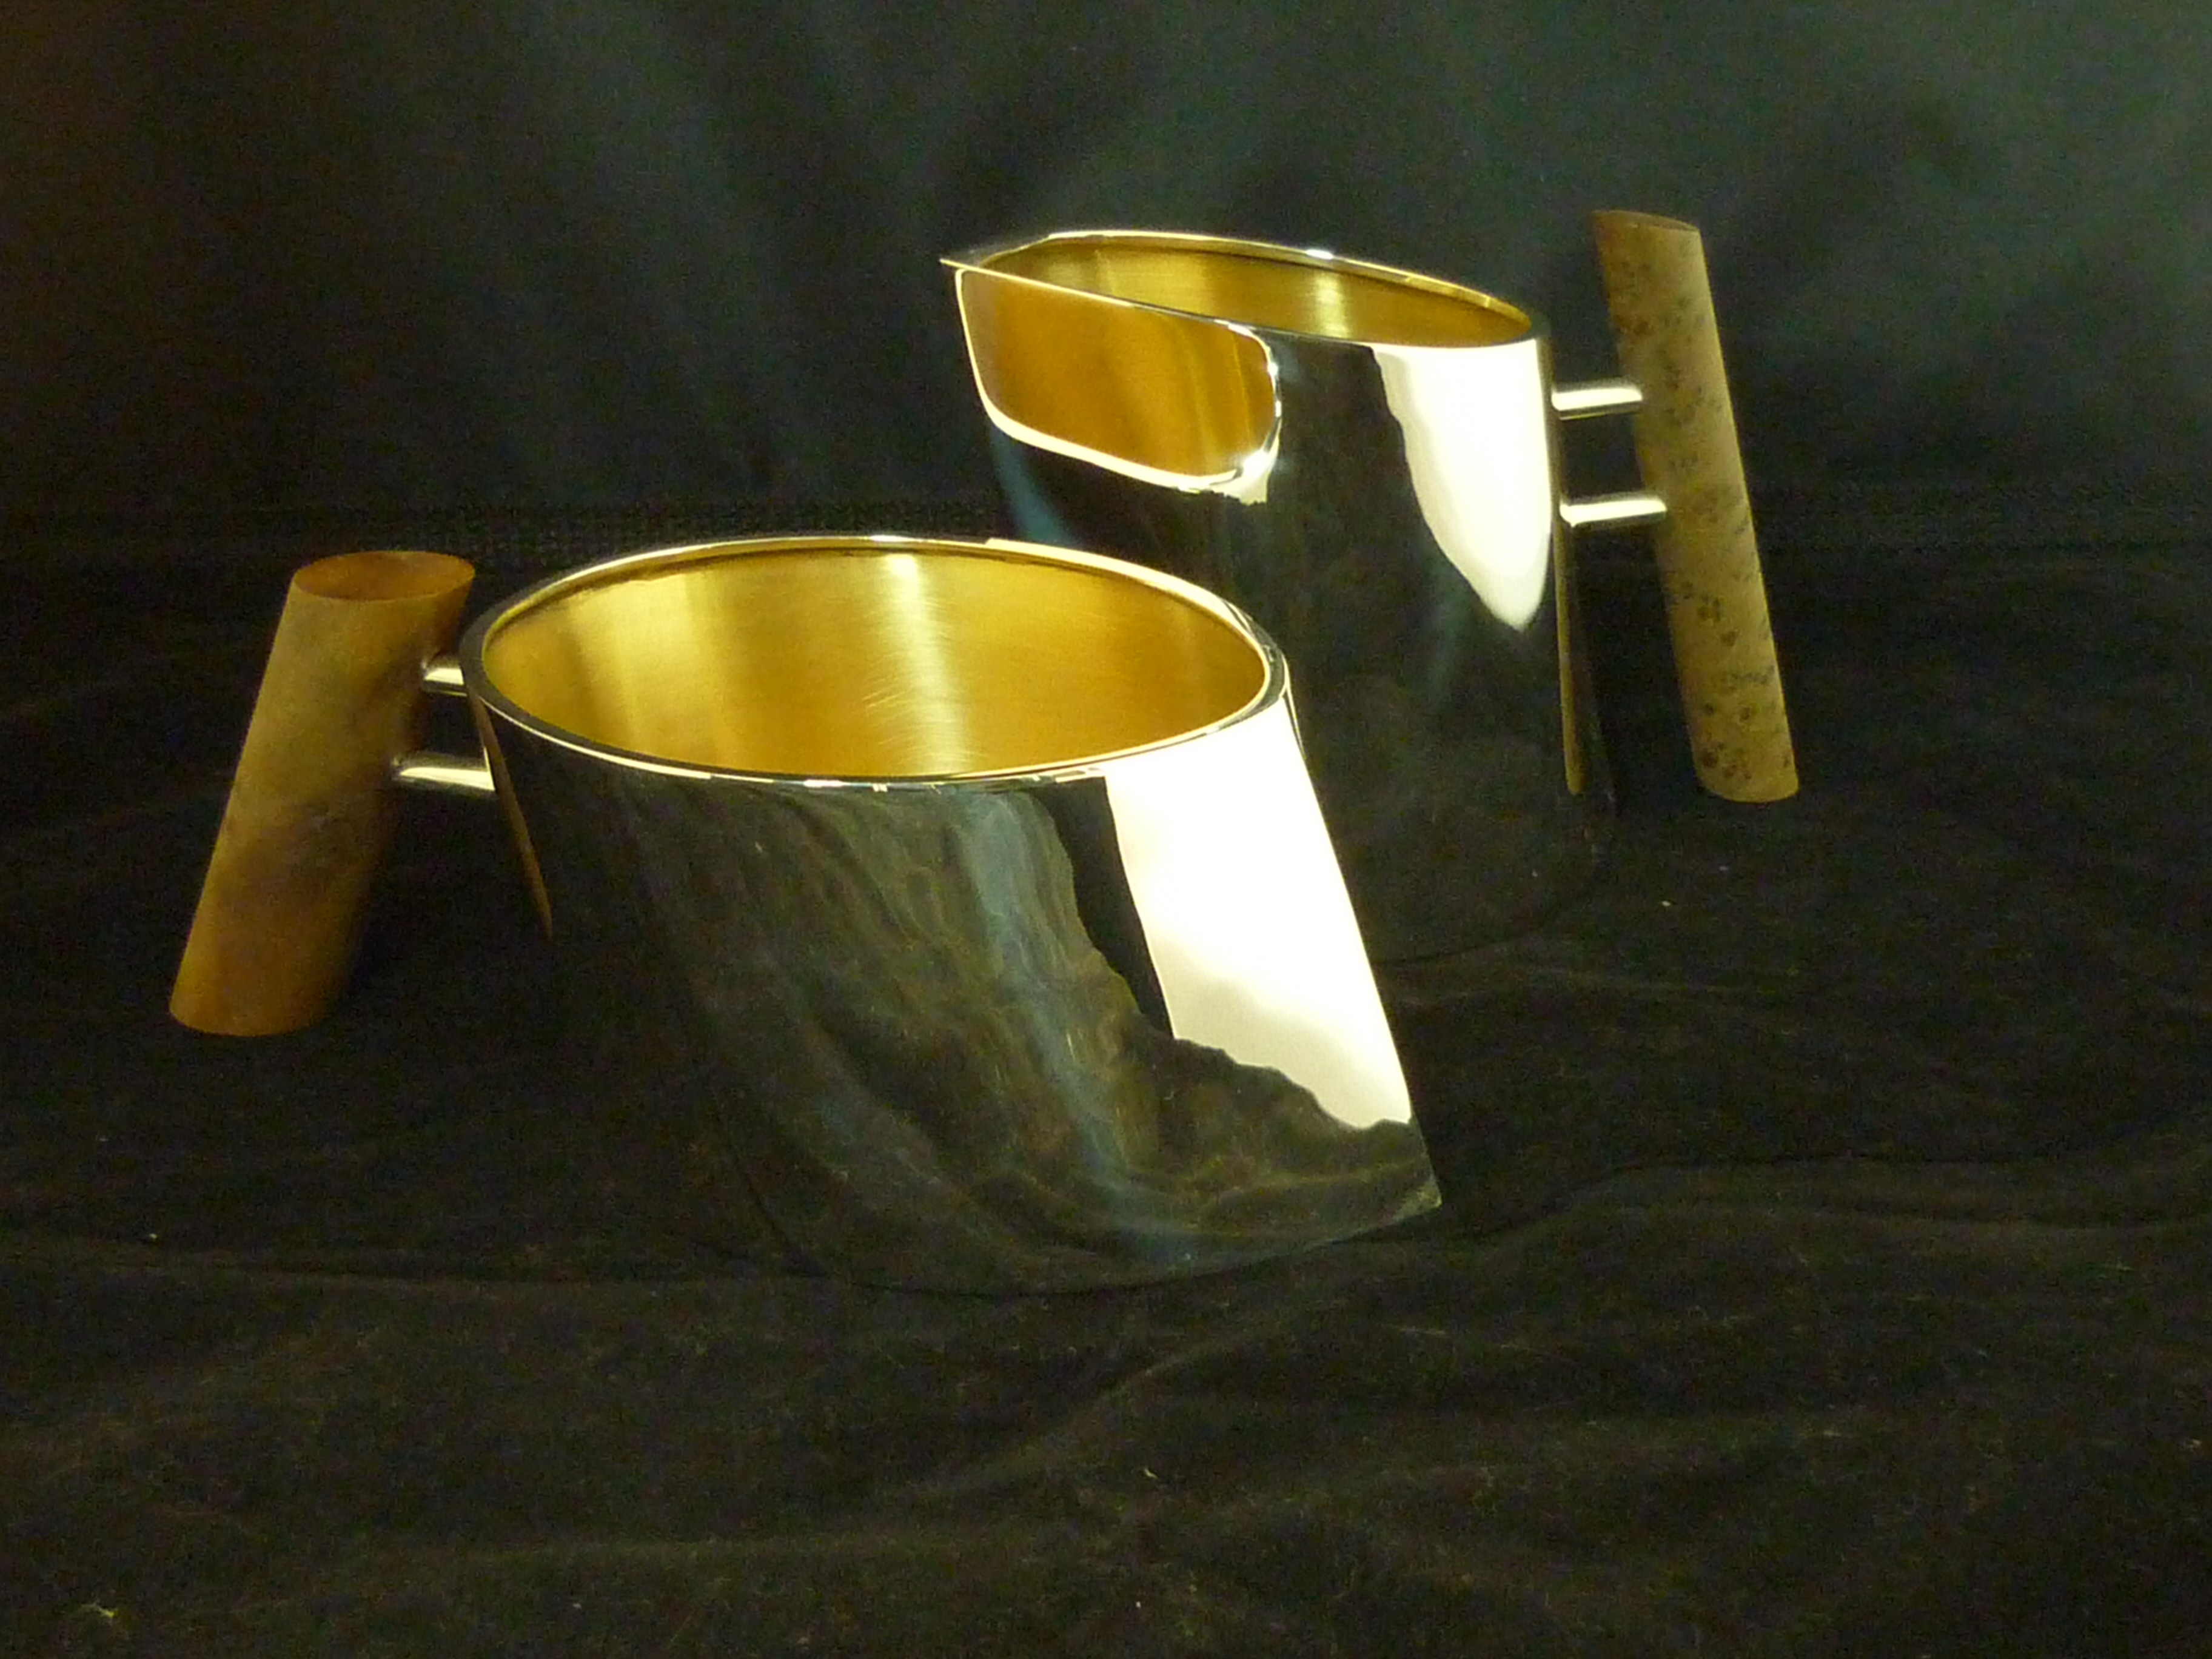 sugar and cream set - sterling silver with nut burl handles - inside gold plated